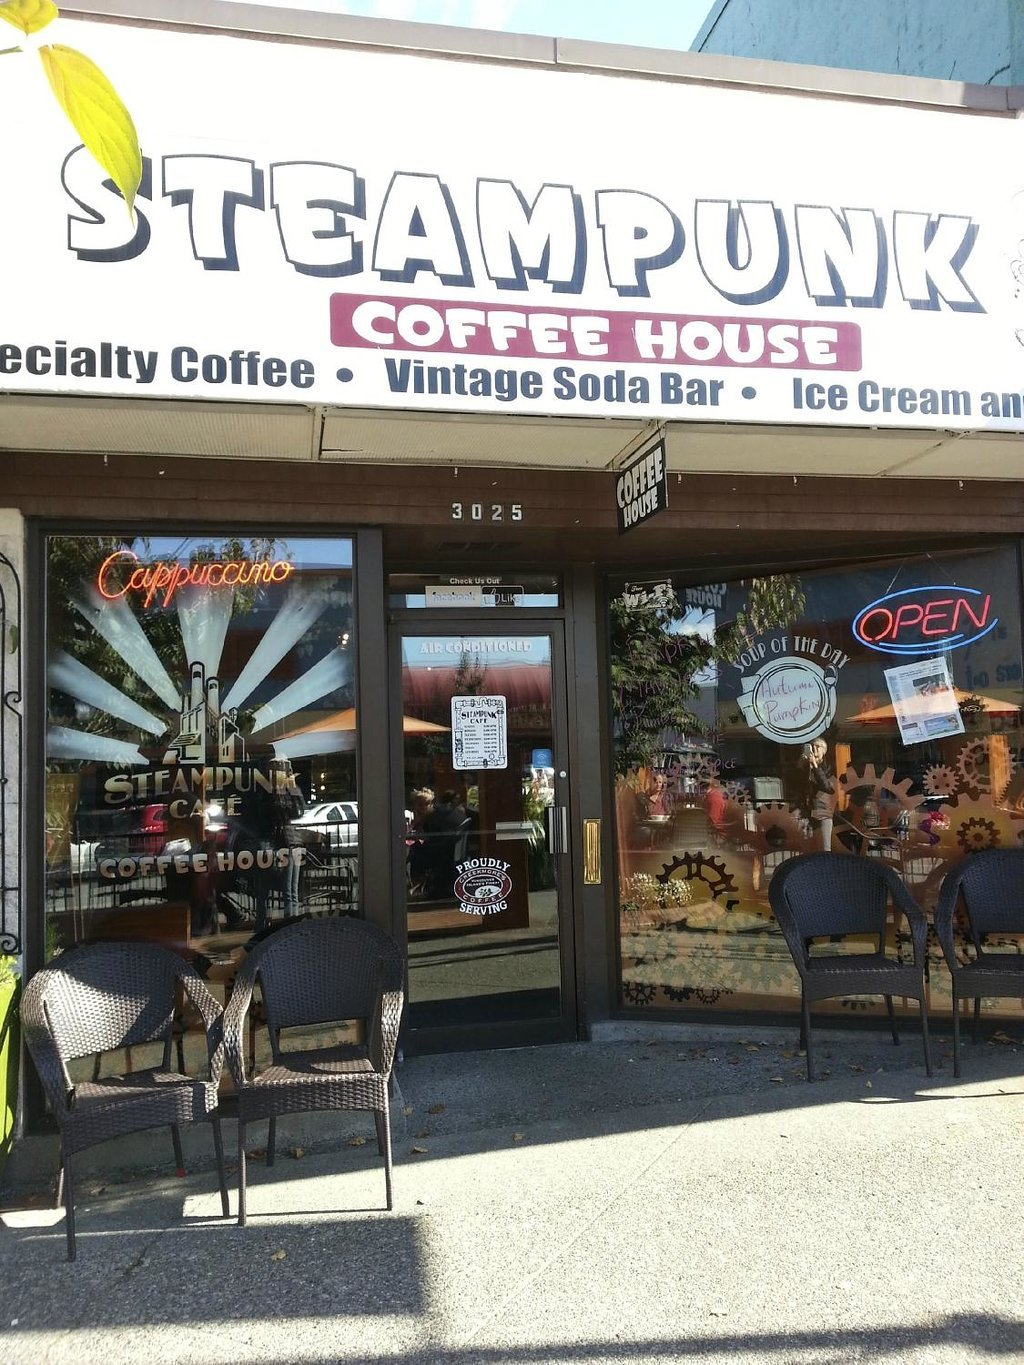 SteamPunk Cafe & Coffee House